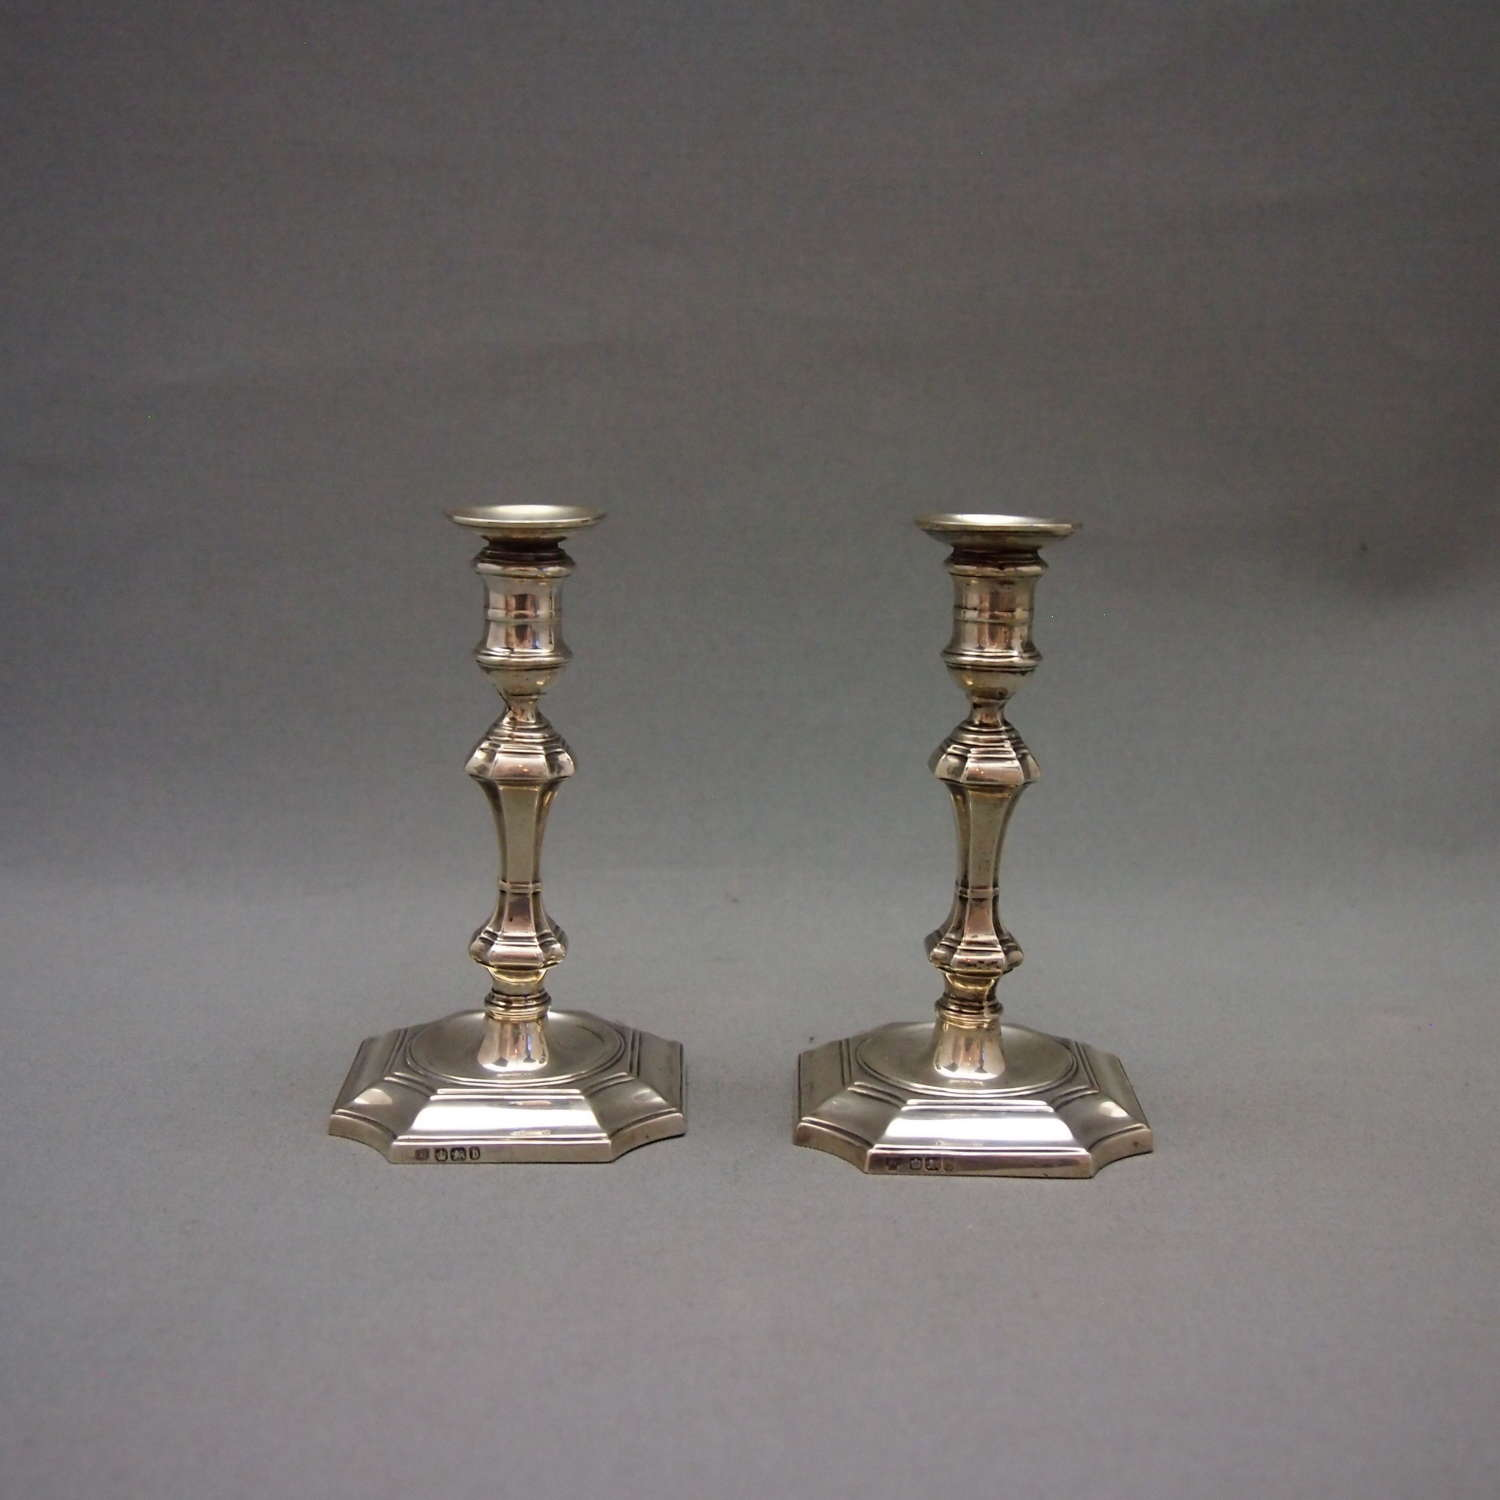 Pair of English Silver Antique Taper Candlesticks W8596